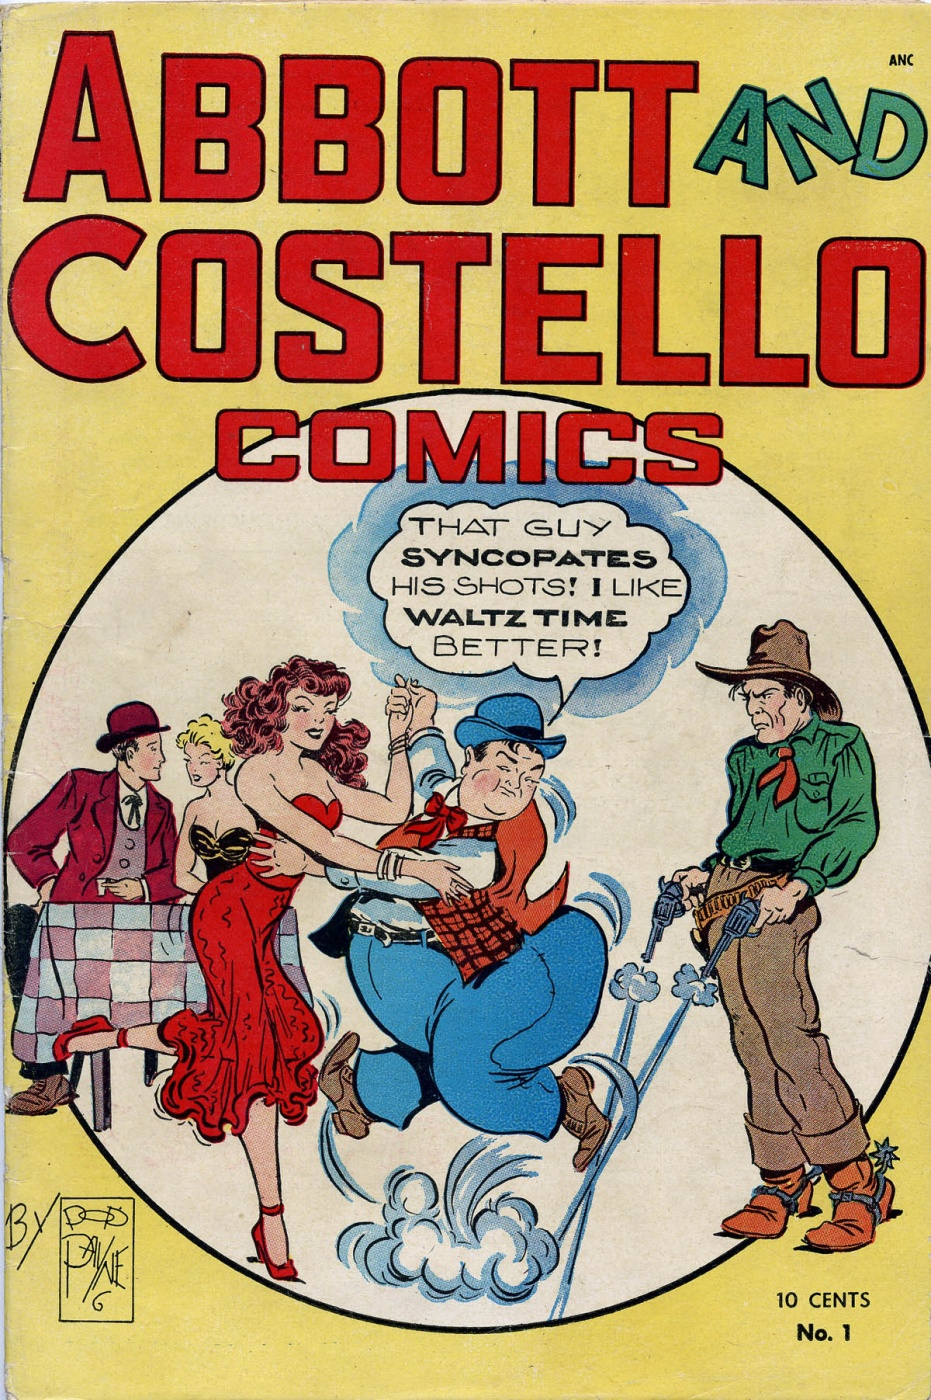 Funny Comic Strips - Abbott and Costello 001 (Feb 1948) 1